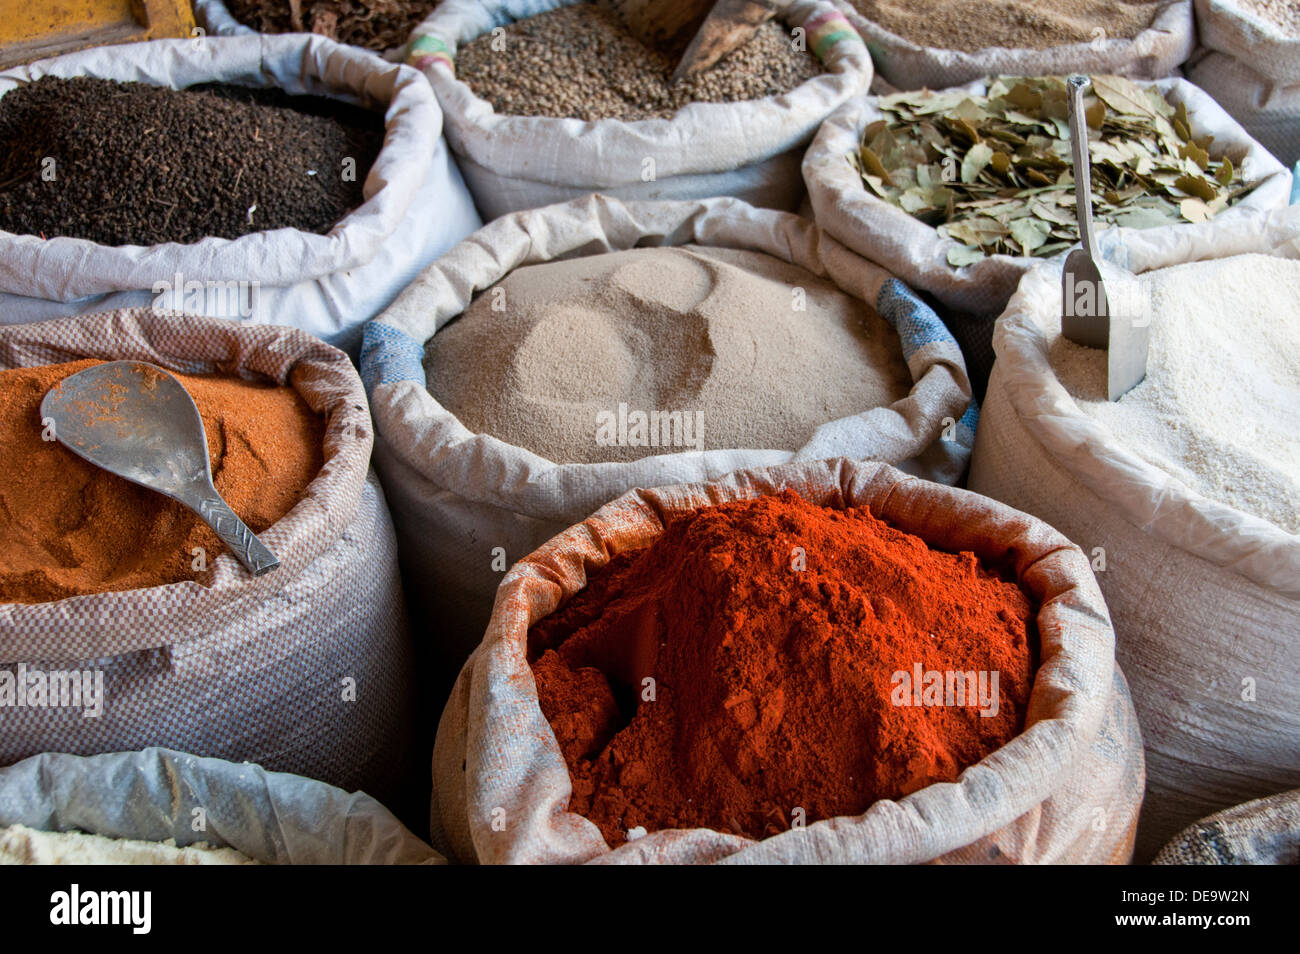 Colourful Spices and Pulses for sale in Sacks, Serrekunda Market, The Gambia, West Africa Stock Photo